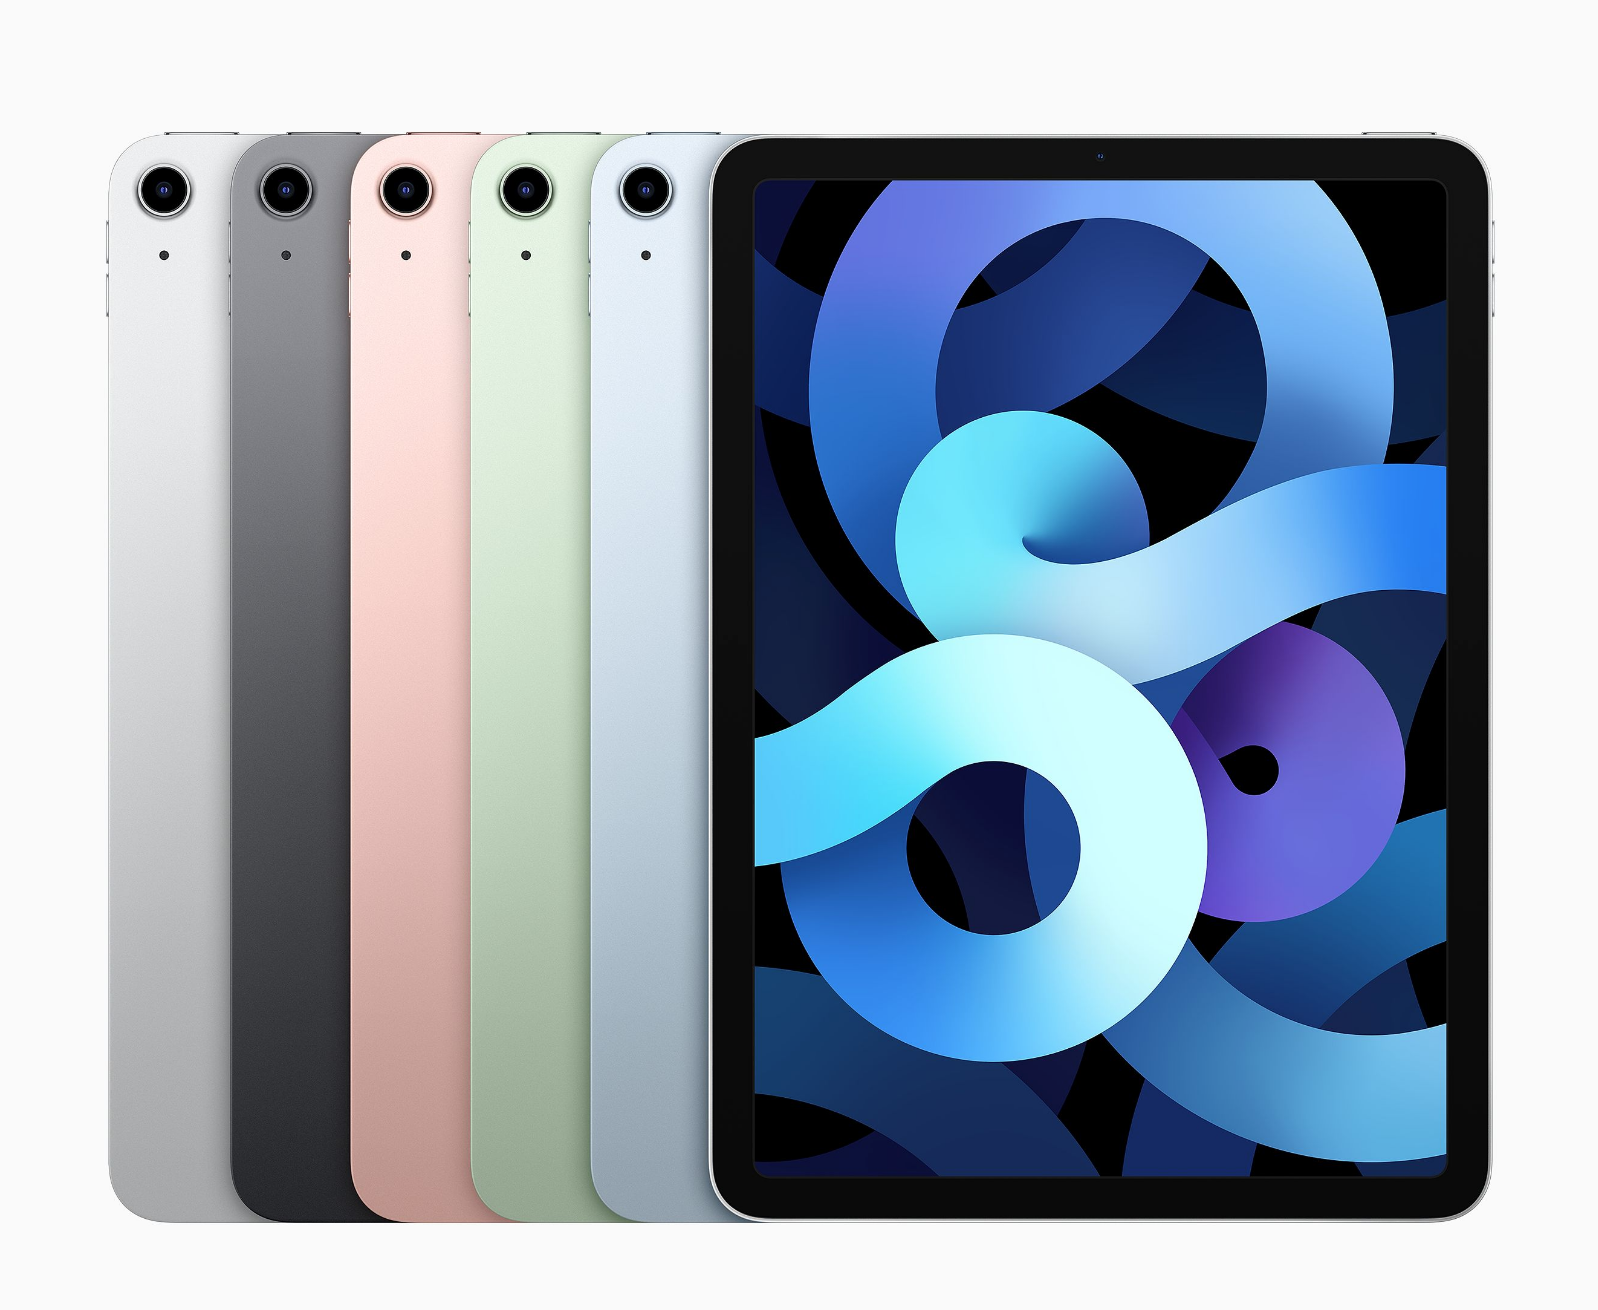 Ipad Air 4 10.9'' (2020) Wi-Fi + Cellular - Hàng Apple8